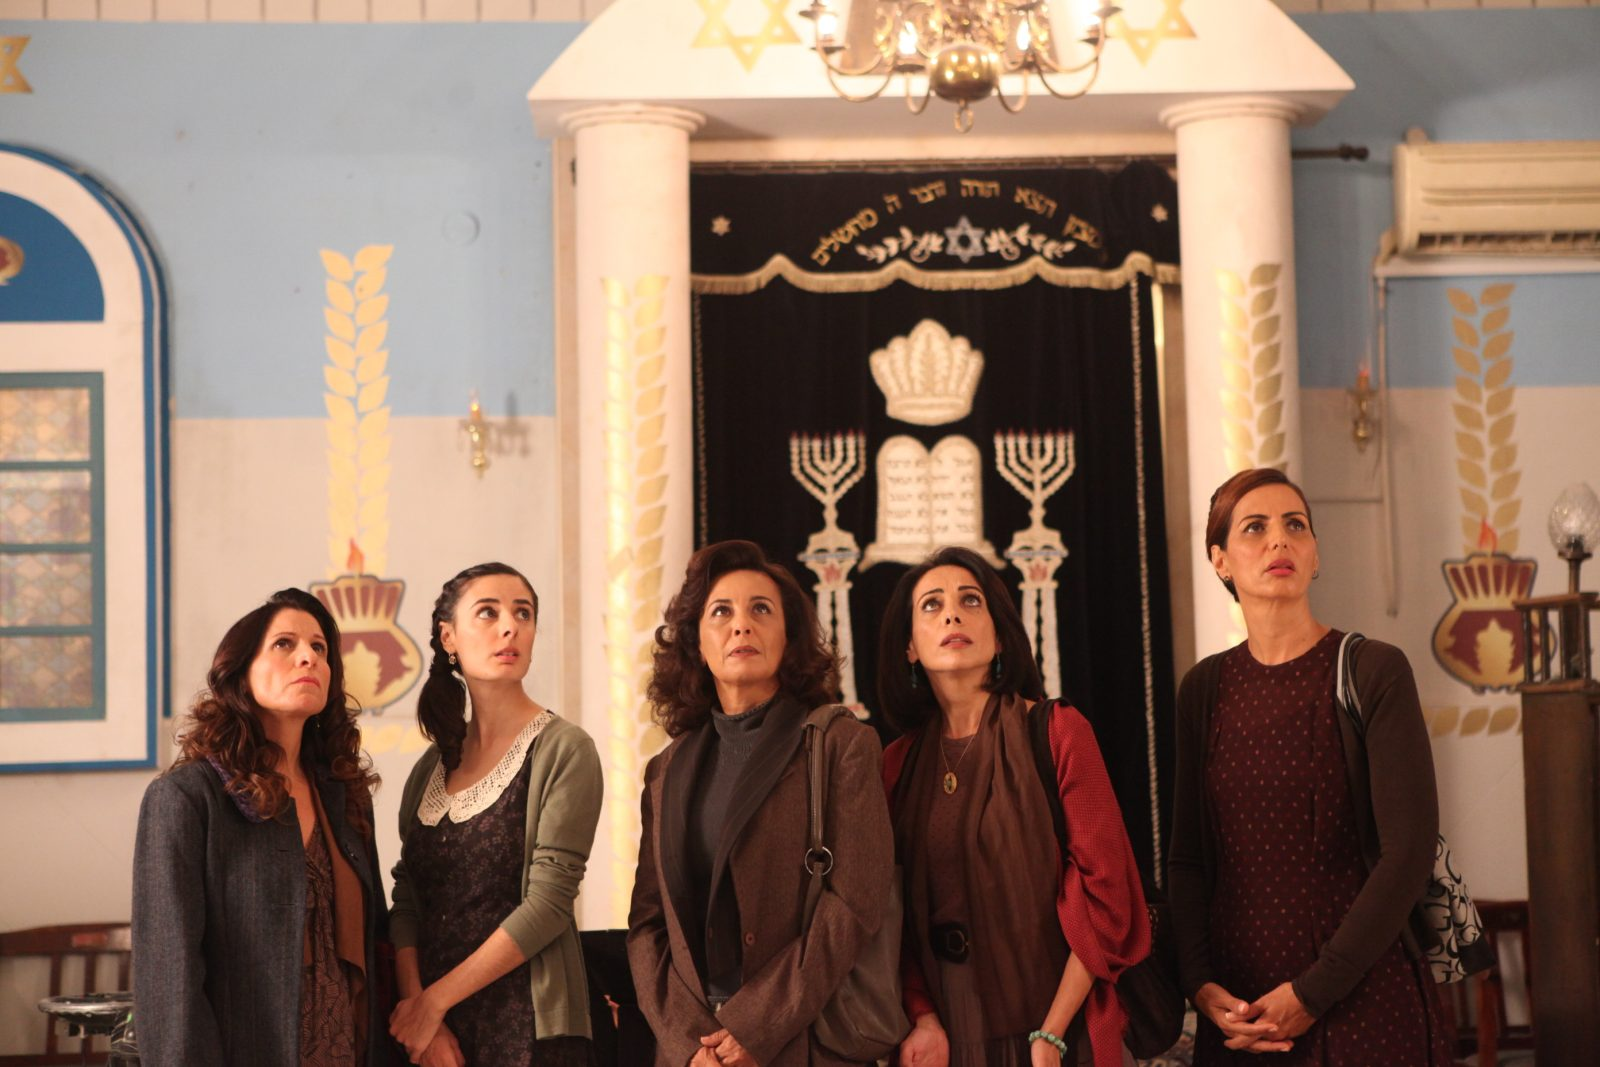 'The Women's Balcony,' the highest grossing film in Israel in 2016, will be shown as part of the Buffalo International Jewish Film Festival.